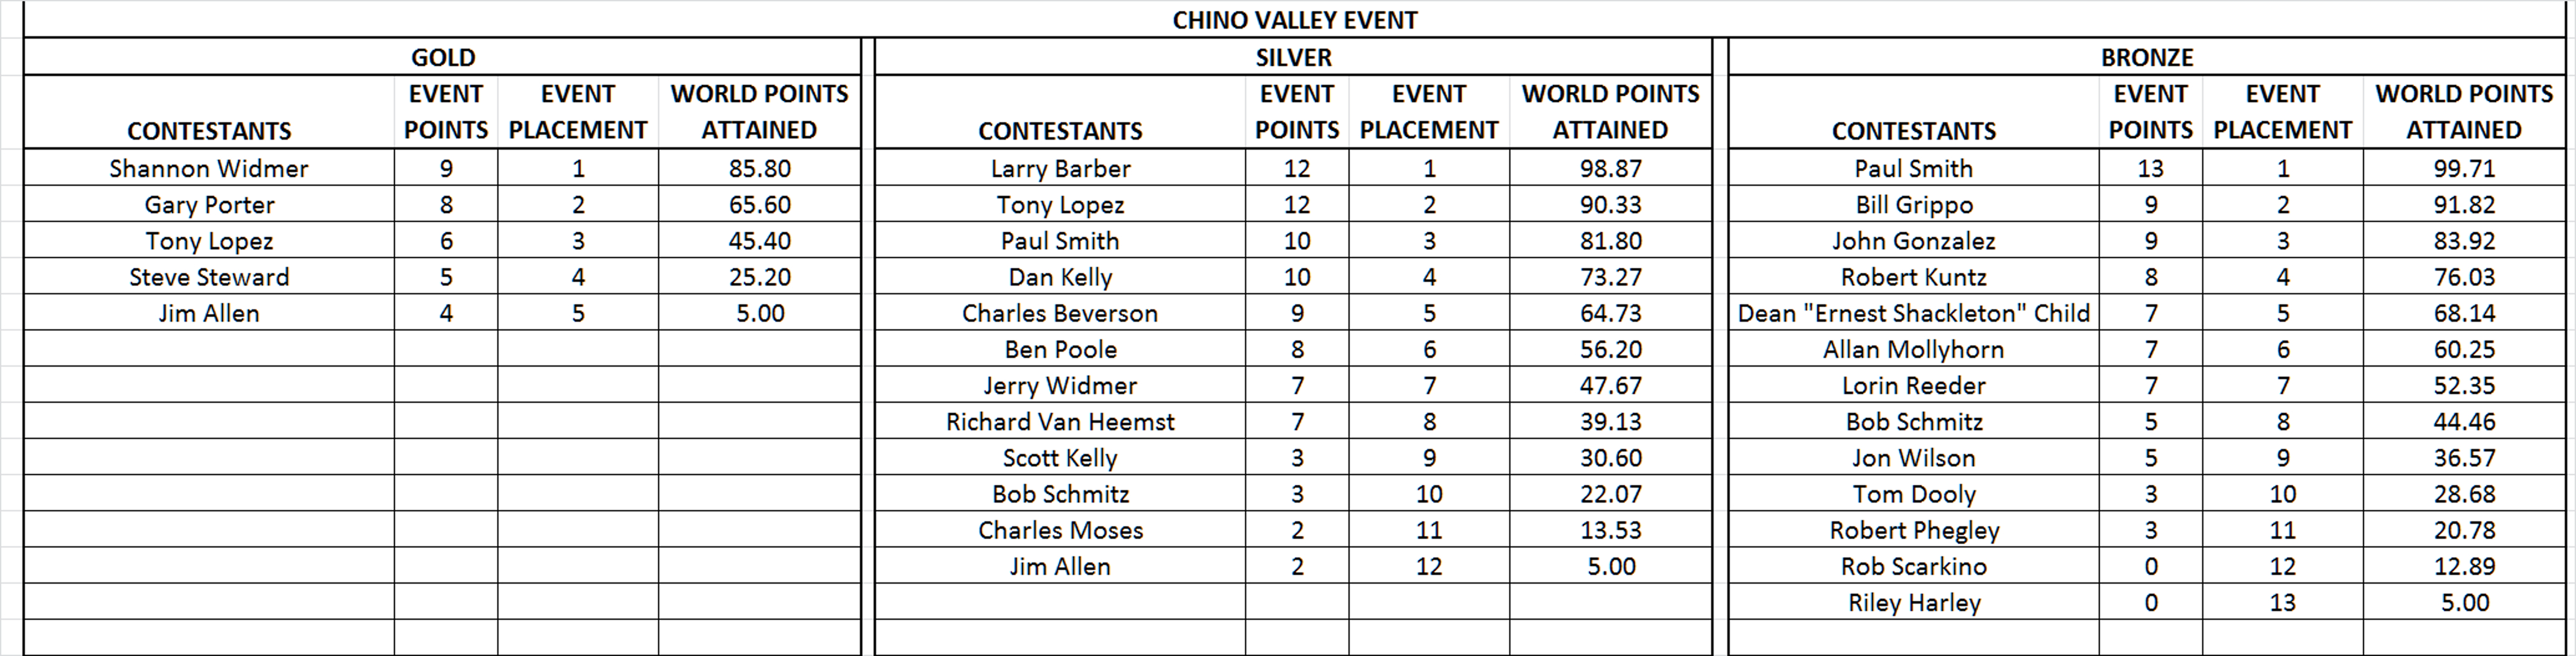 Click image for larger version  Name:Chino Valley.jpg Views:71 Size:1.30 MB ID:2229720